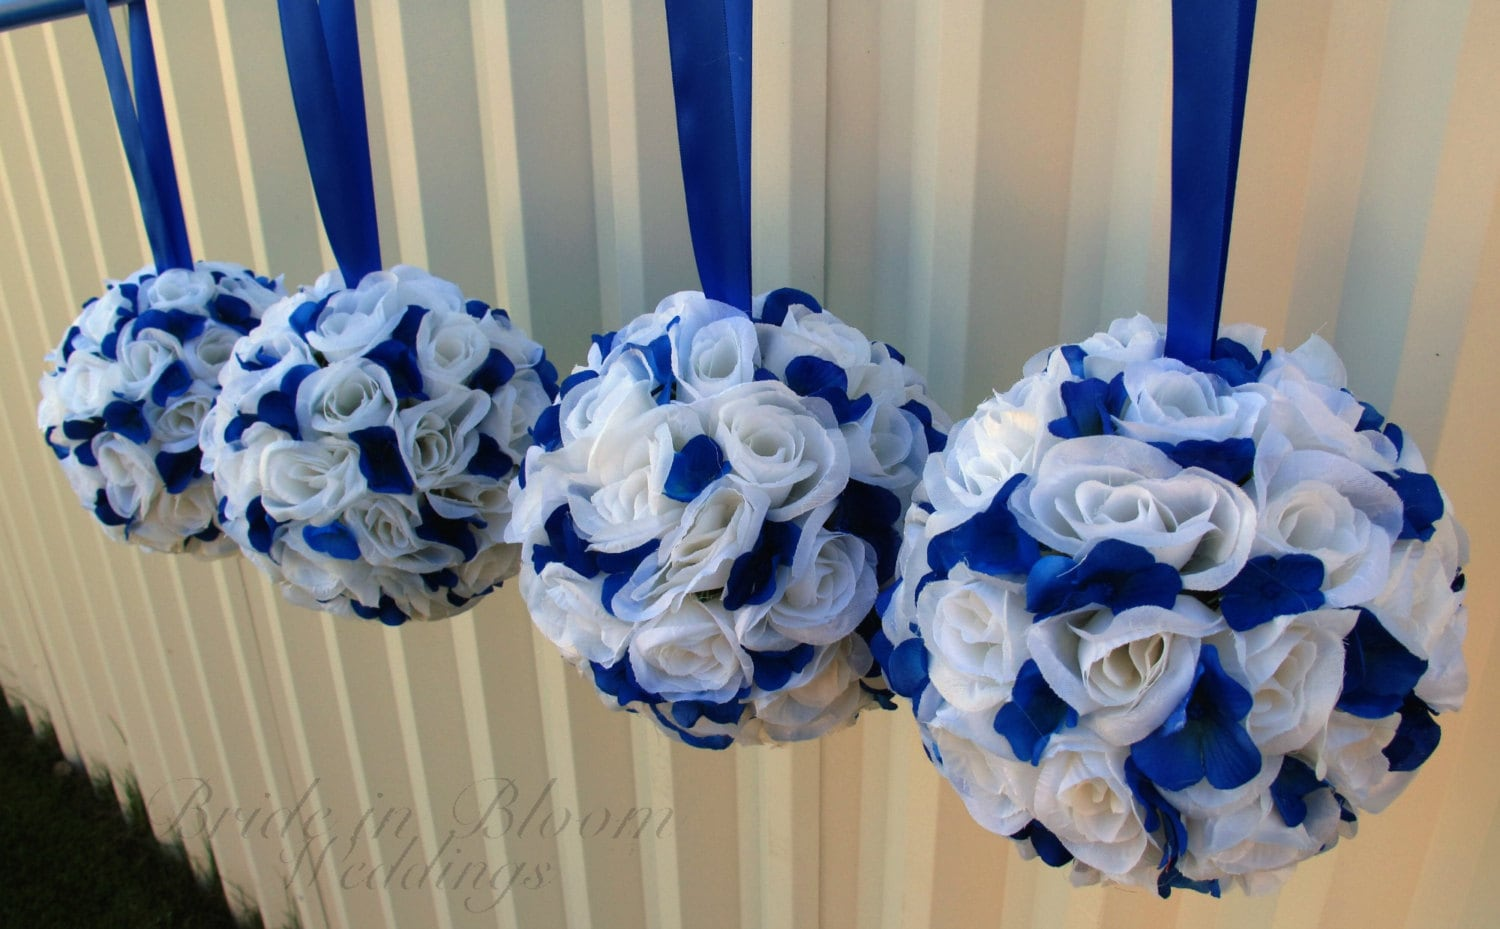 Royal blue wedding decor keywords weddings jevelweddingplanning royal blue wedding decor keywords weddings jevelweddingplanning follow us jevelweddingplanning facebookjevelweddingplanning junglespirit Image collections